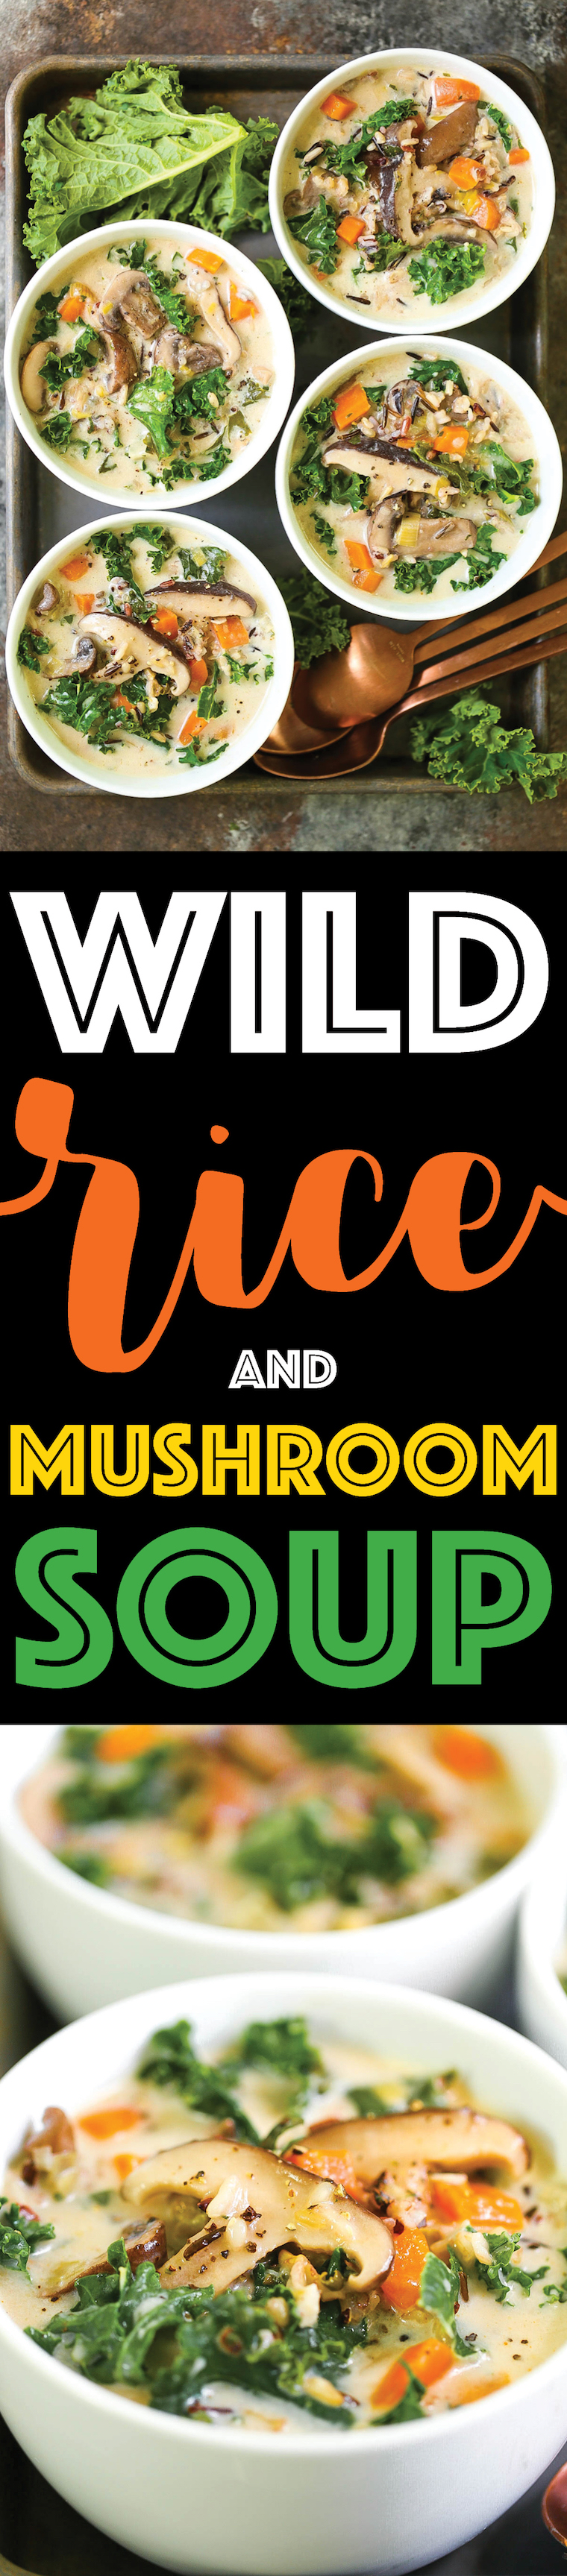 Wild Rice and Mushroom Soup - Perfectly cozy, hearty, and comforting for any season of the year! Loaded with wild rice, mushrooms, carrots, leeks, and kale!